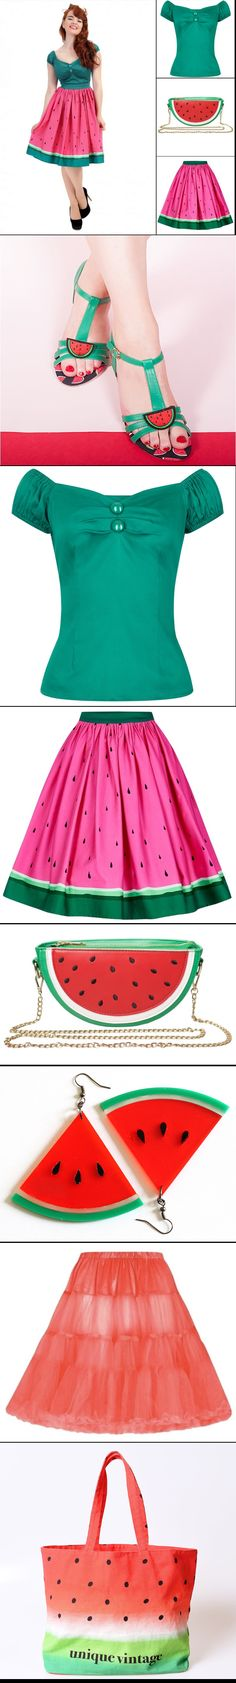 Watermelon Outfit for Summer - Find all the Products here:  http://pinup-fashion.de/17842/wassermelonen-collage/  #watermelon #melon #melone #wassermelone #fashion #vintage #retro #summerdress #dress